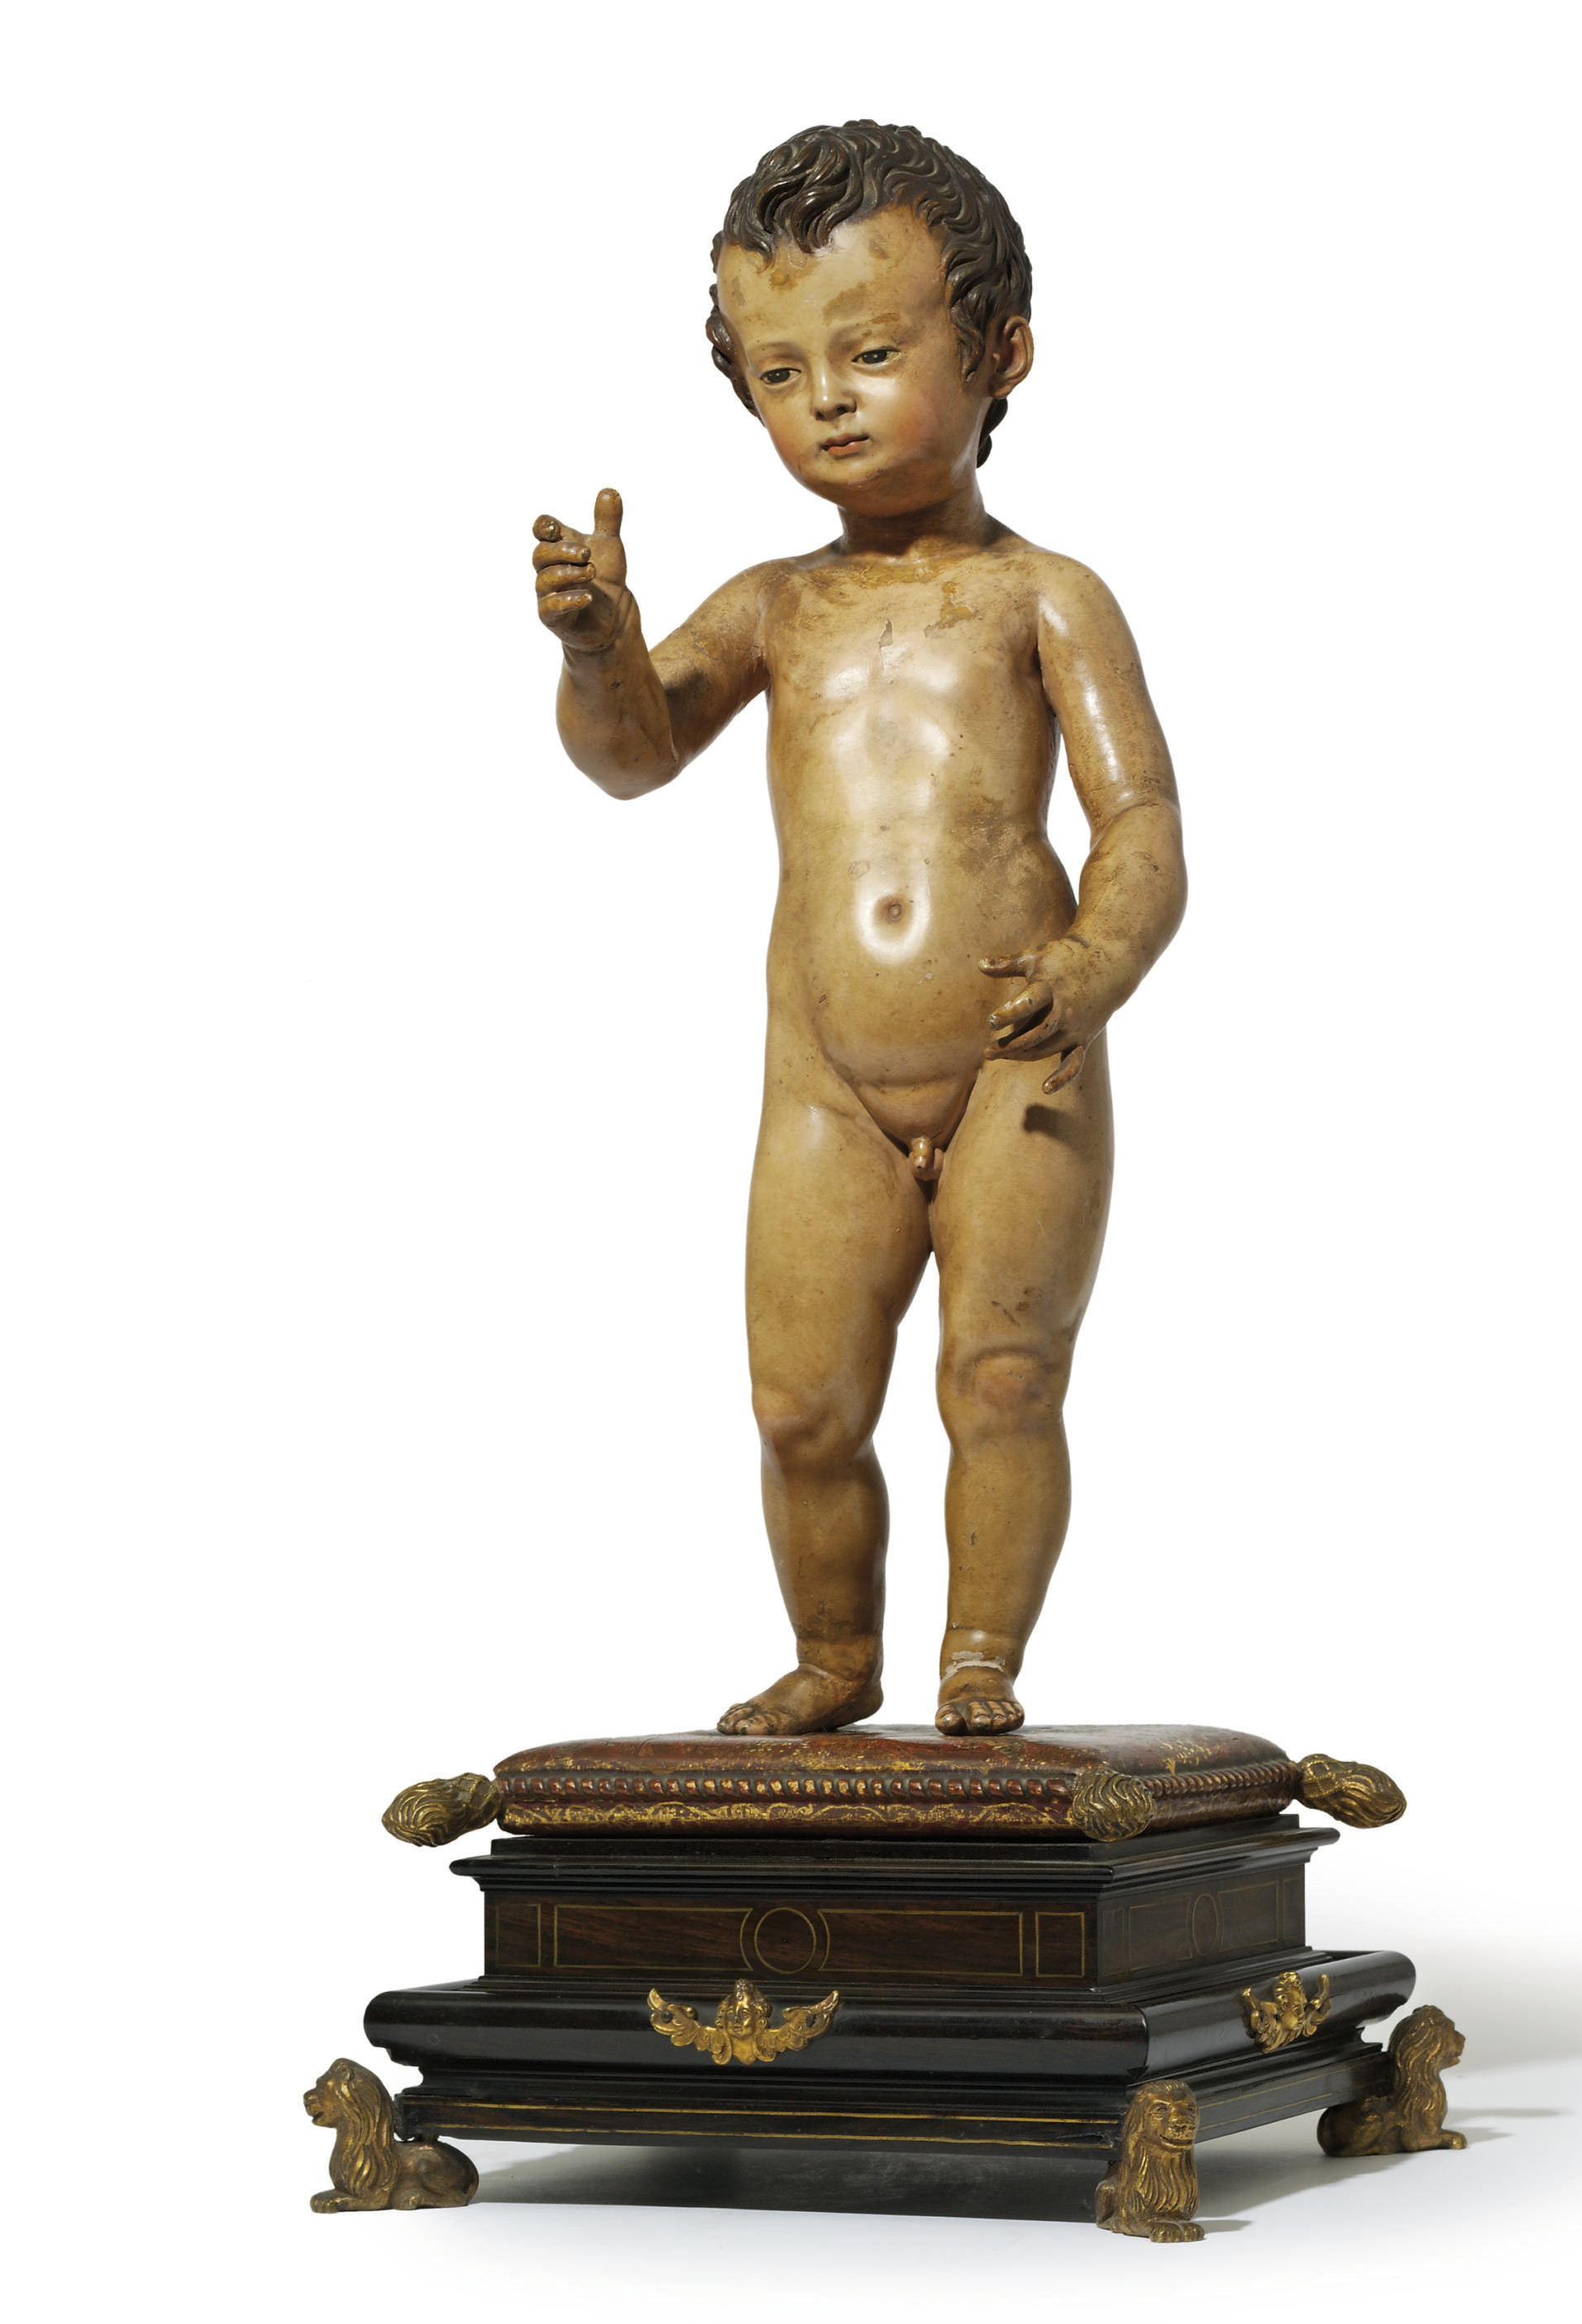 A POLYCHROME LEAD FIGURE OF TH